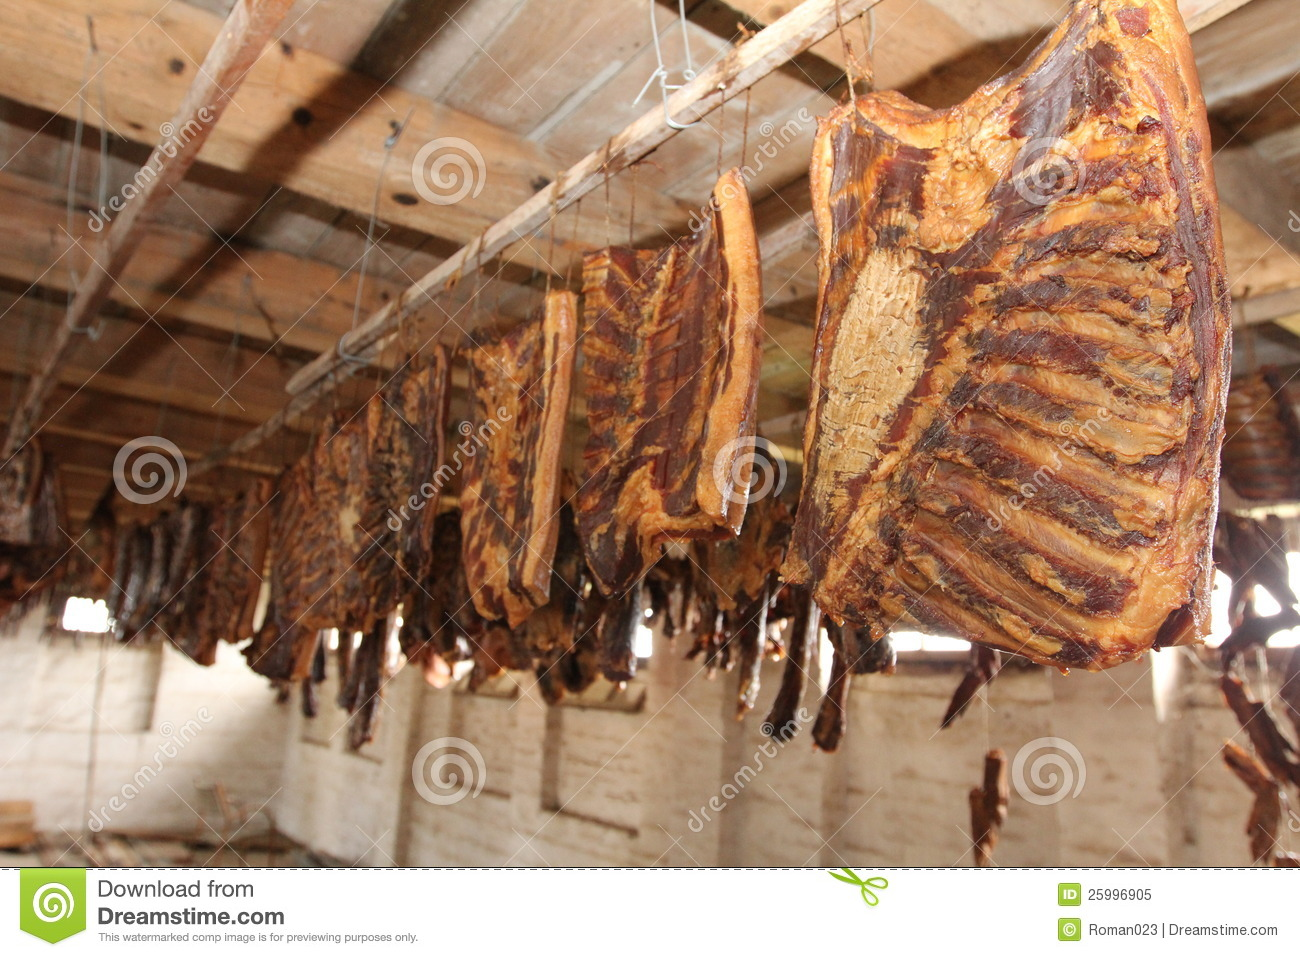 Smoked meat bacon in a smoke house royalty free stock photo image 25996905 - How to smoke meat ...